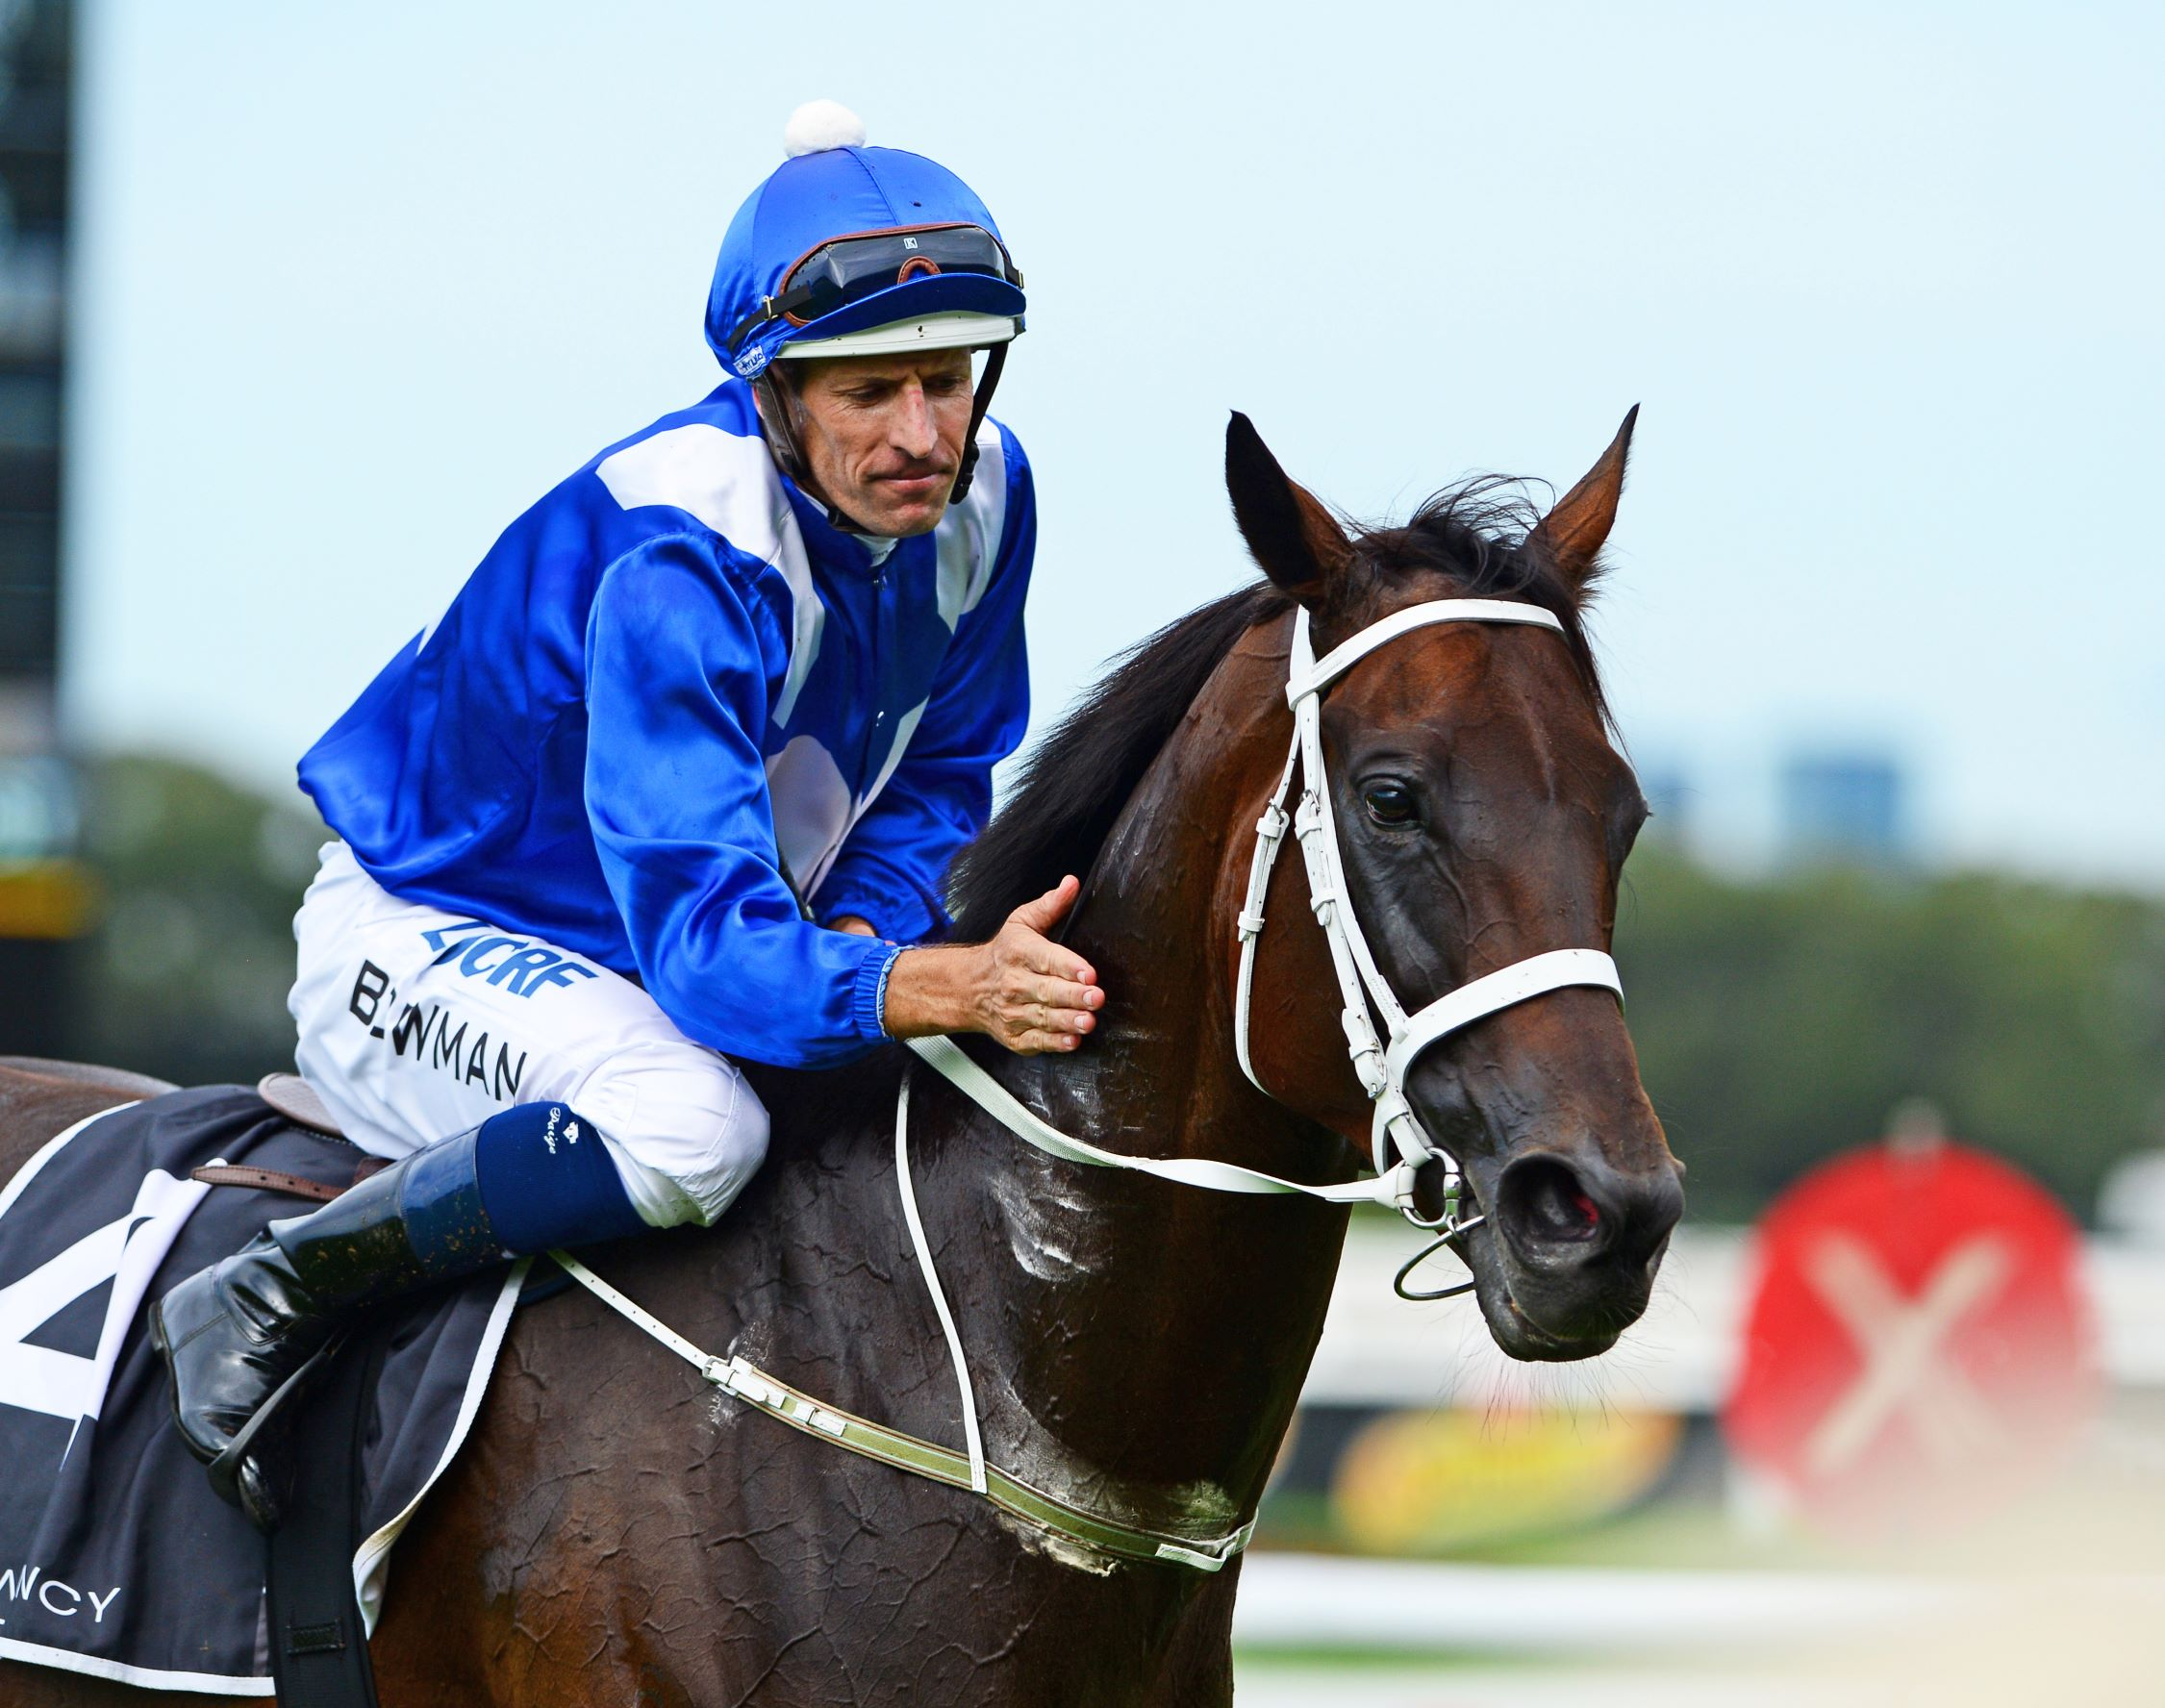 Winx after winning her fourth consecutive George Ryder Stakes